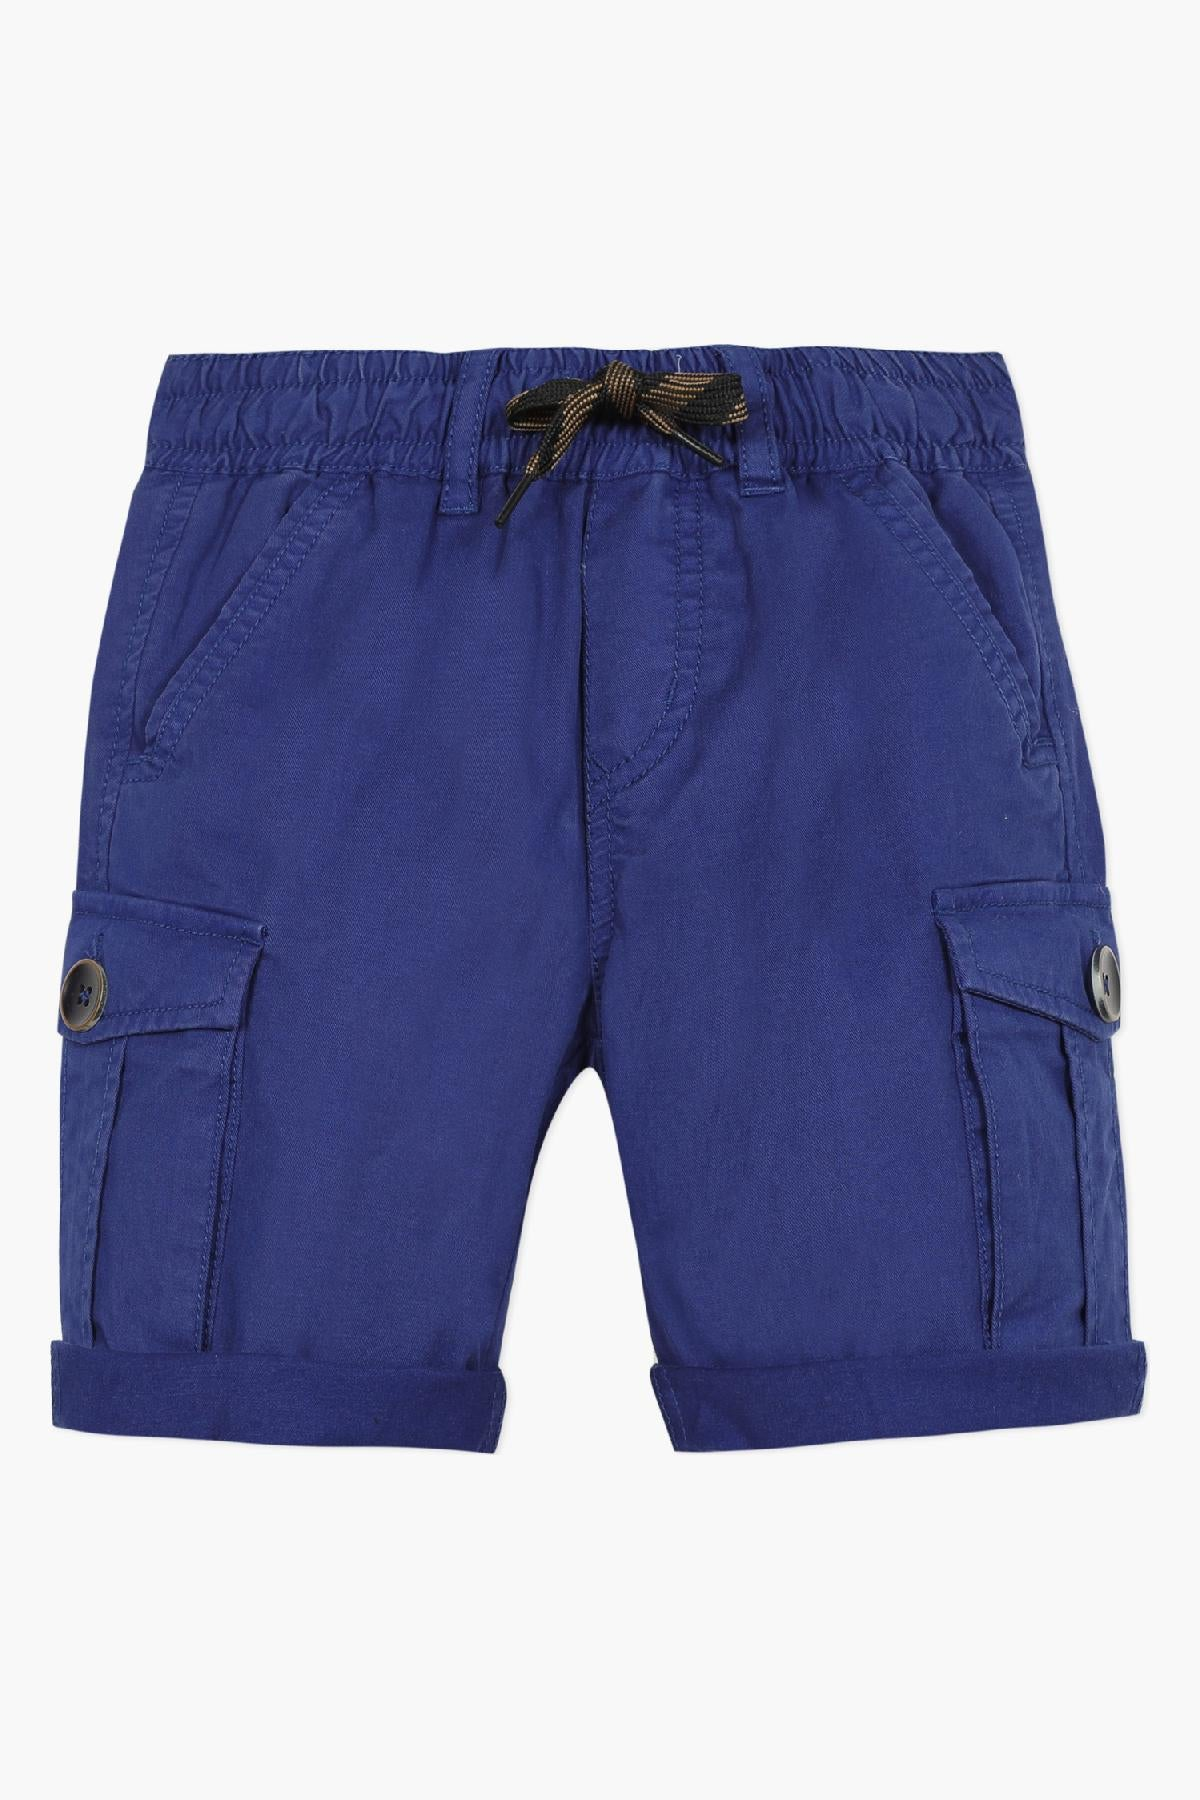 Catimini Boys Shorts